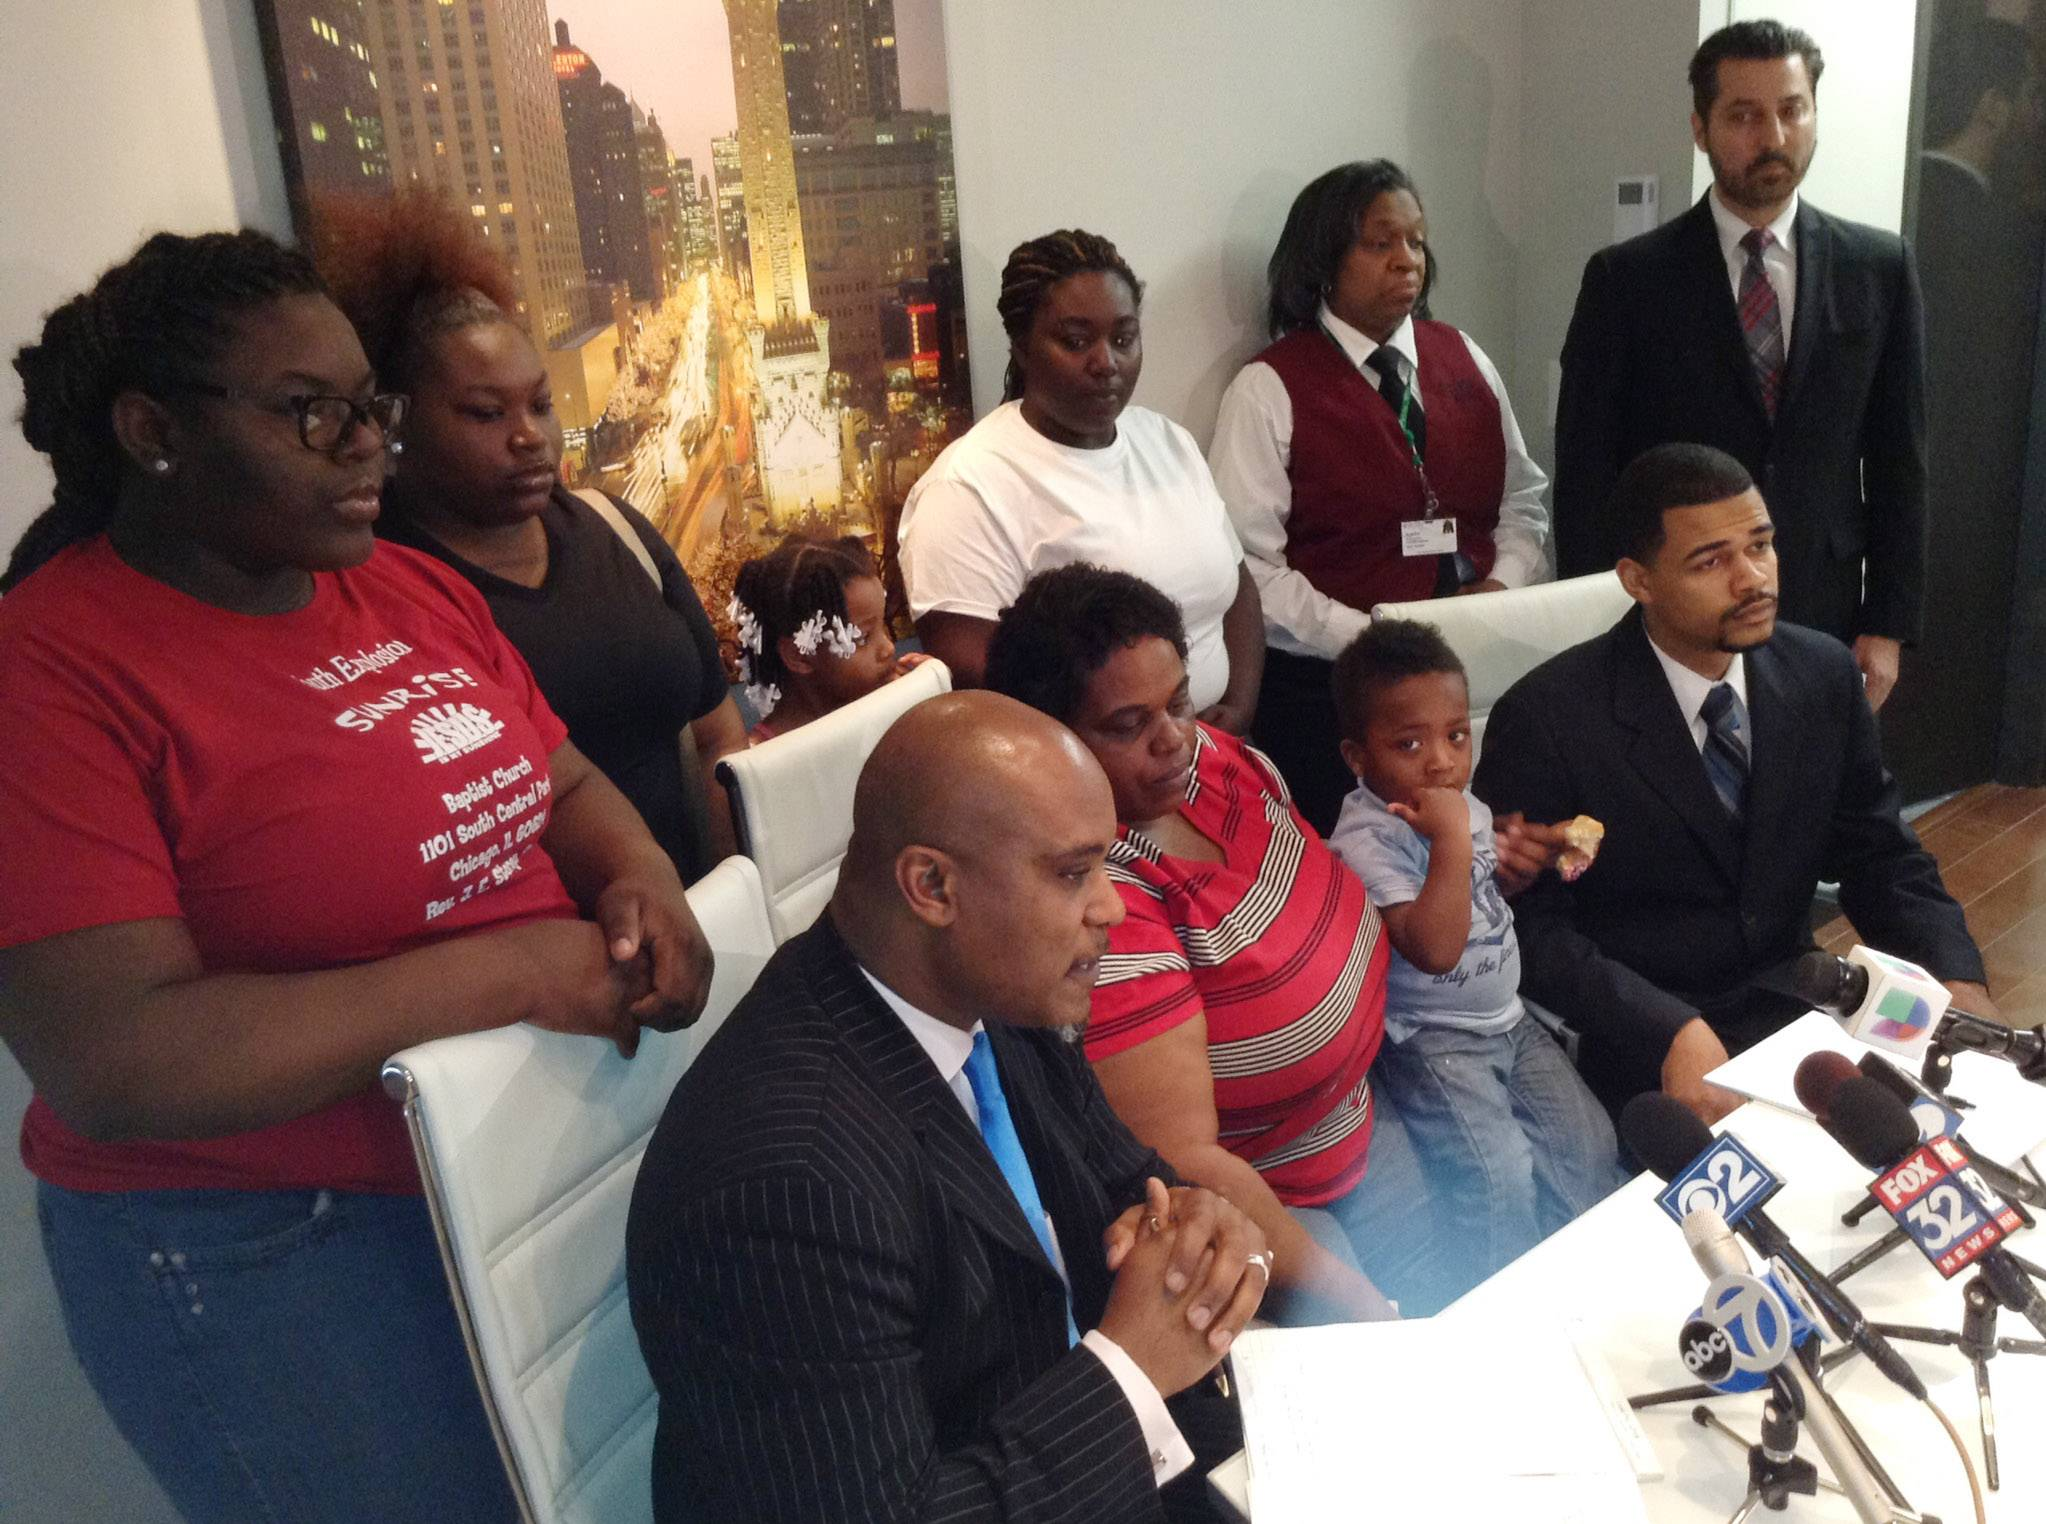 Attorney Cannon Lambert Sr., seated left, is joined by the family of Shaquan Allen Friday at a Chicago news conference. Shaquan's mother, Willie Mae, said she's seeking answers to her son's death.